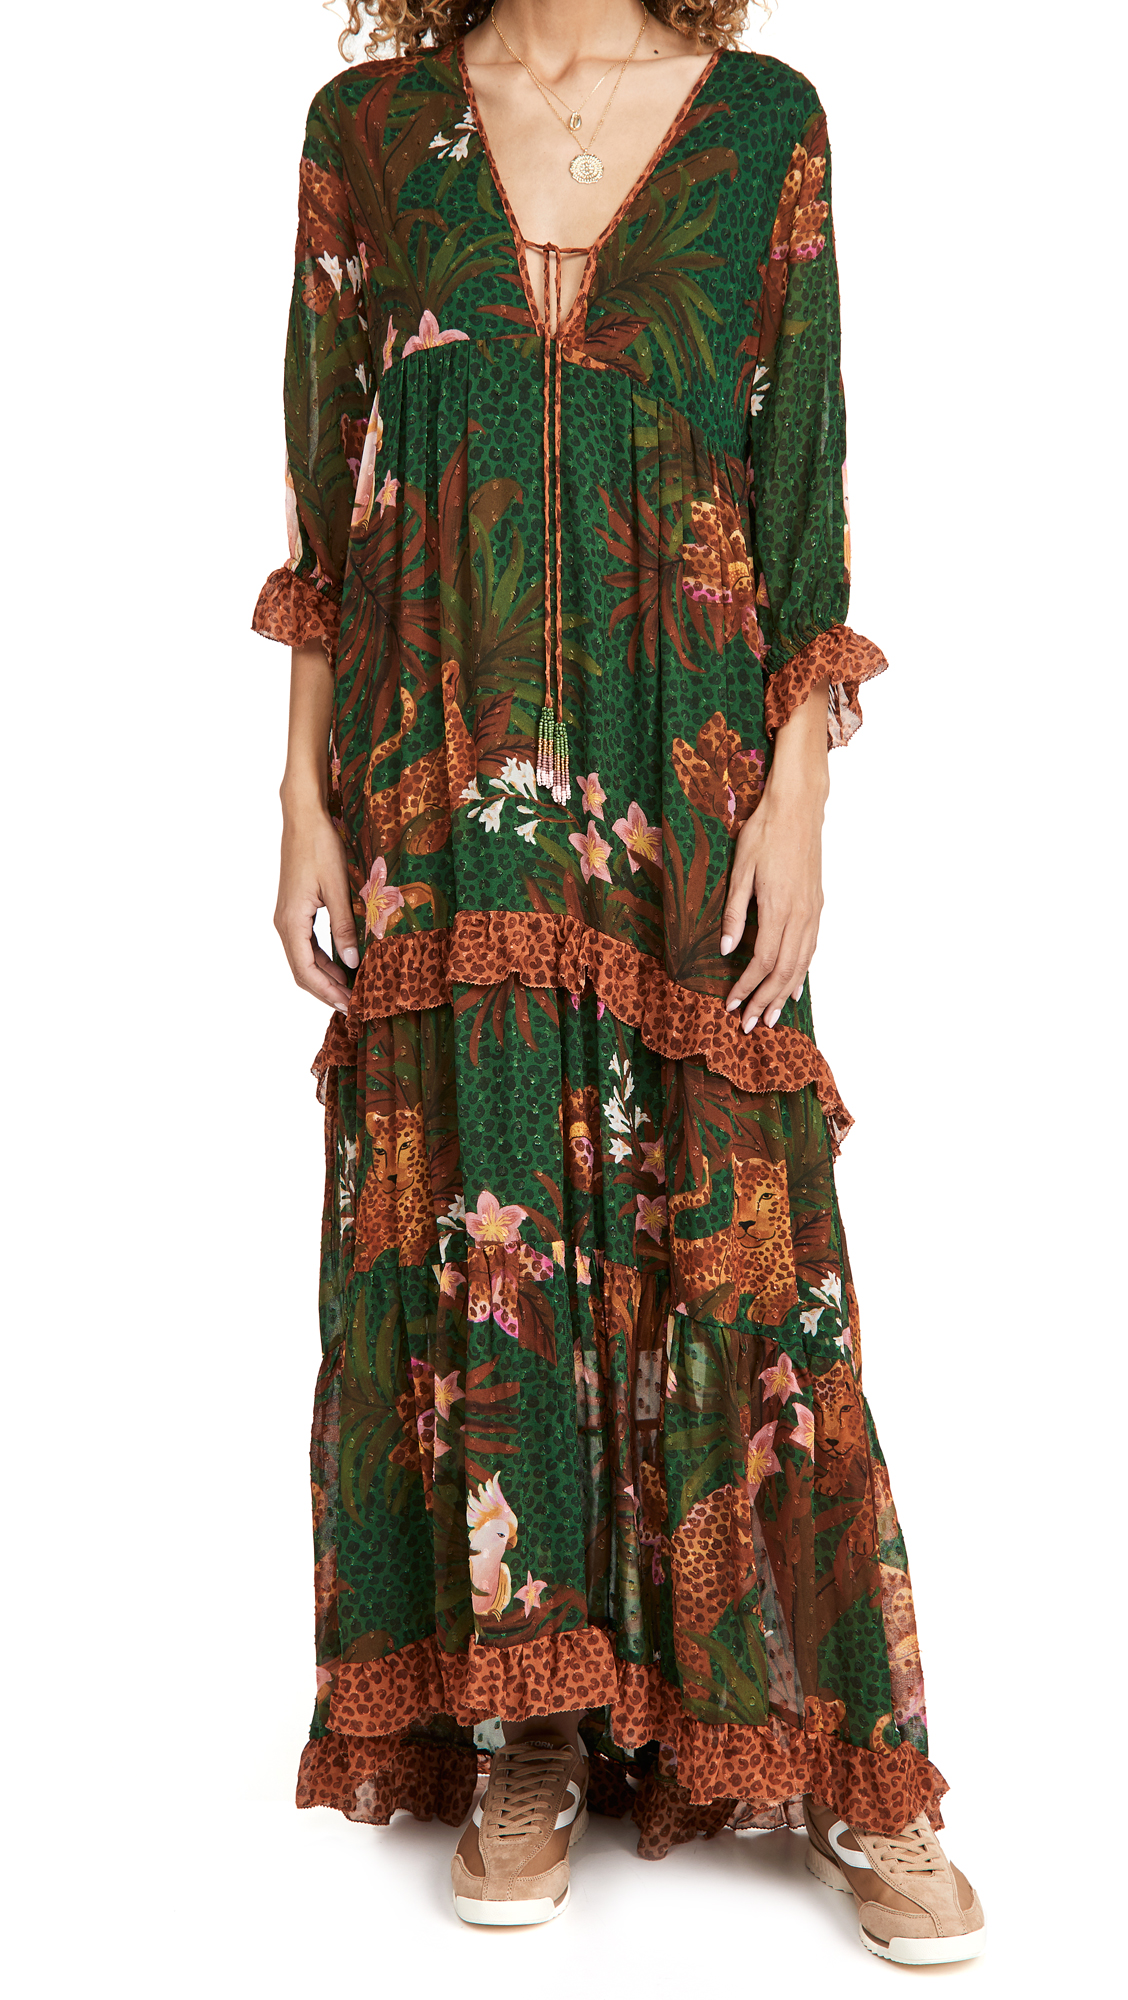 FARM Rio Mix Wild Leopards Maxi Dress